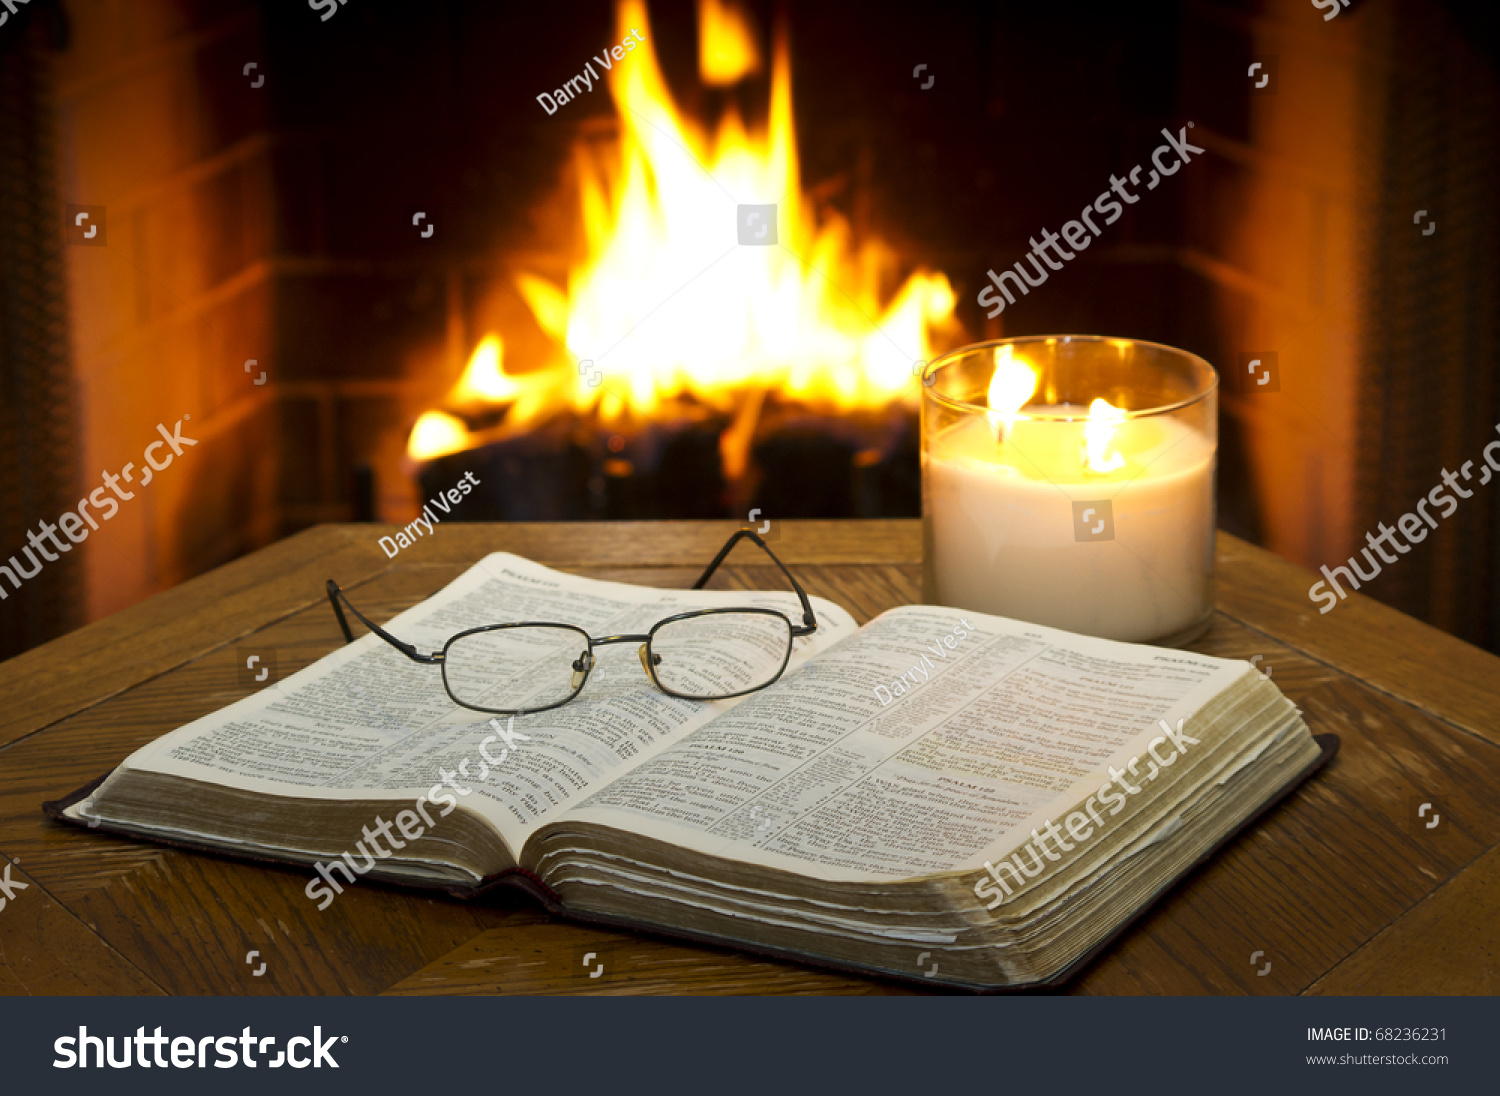 open bible on table fireplace background stock photo 68236231